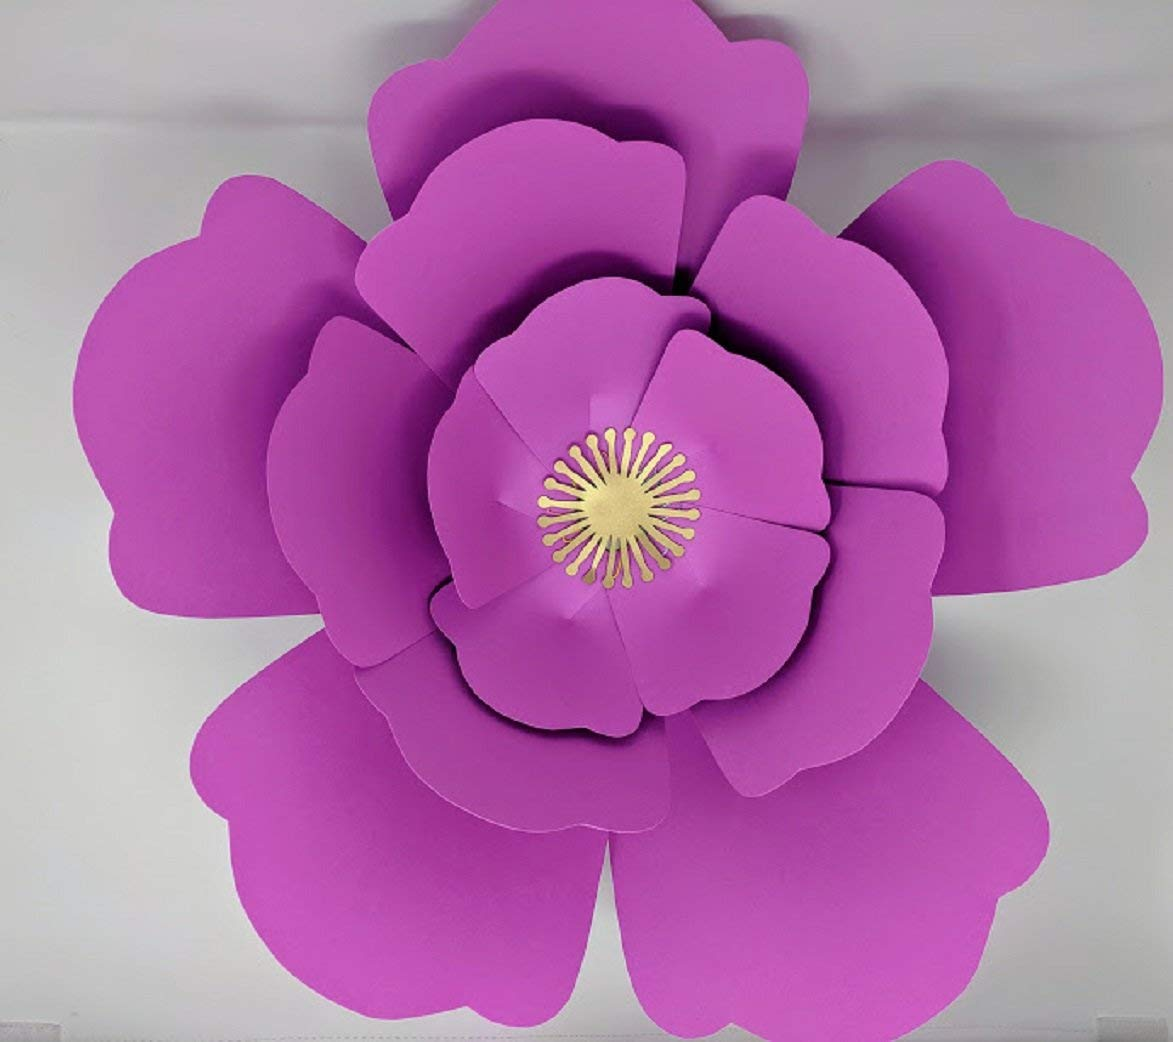 Paper Flower Big Bloom Rose Template With Instructions In English